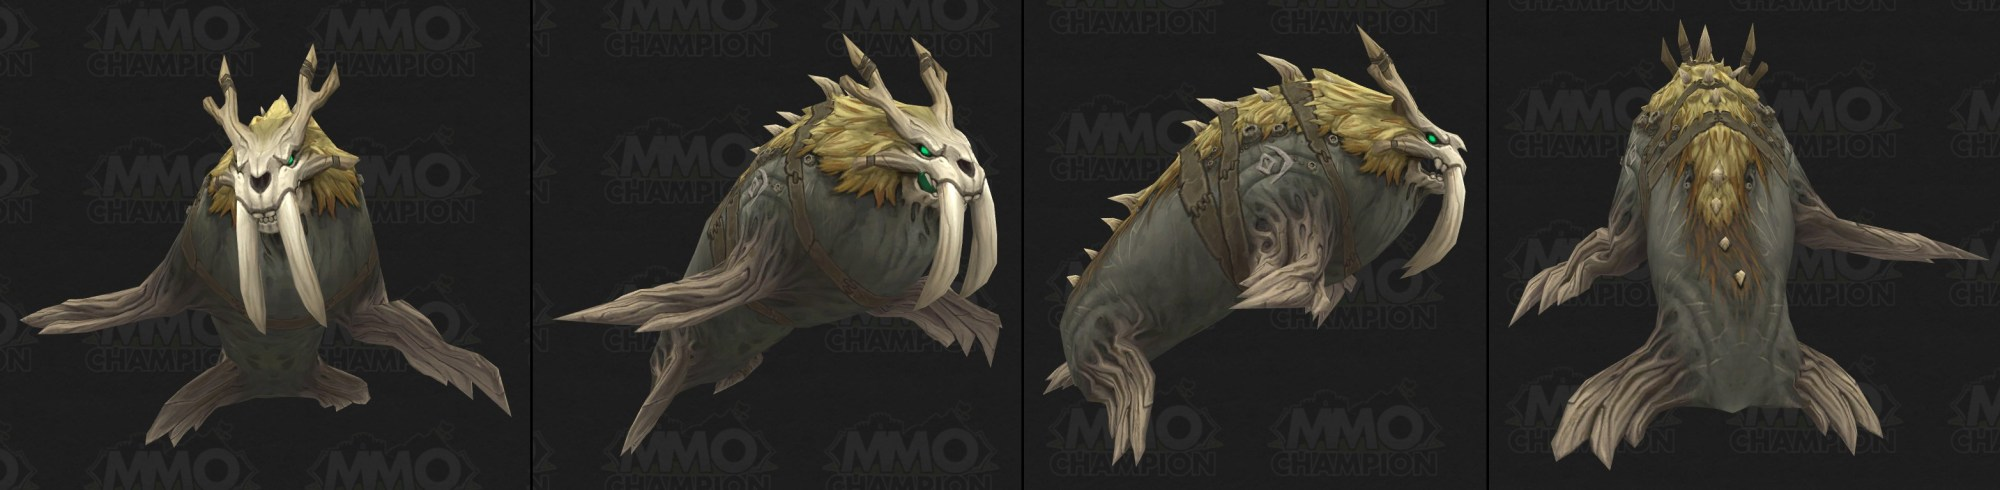 hight resolution of some new hunter pet families were added in this build